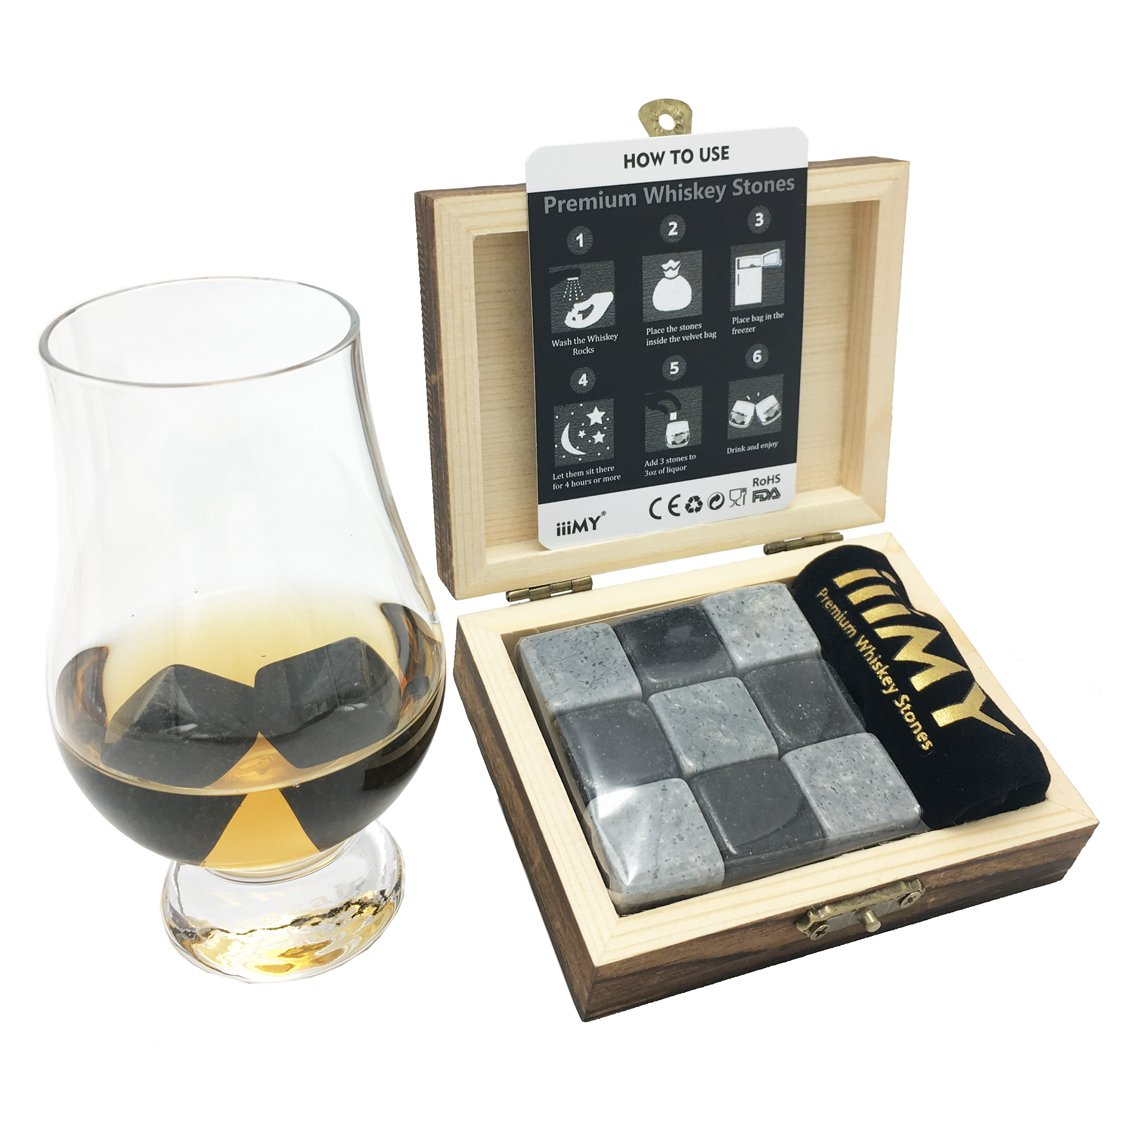 Whisky Stones Gift Set of 9 Natural Soapstone and Granite Chilling Rocks